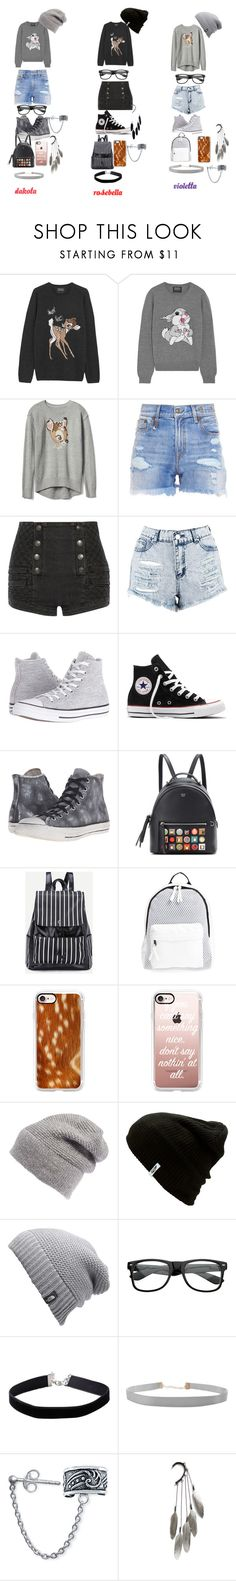 """Bambi and Thumper"" by countrycowgirl-1718 on Polyvore featuring Markus Lupfer, Disney, R13, Pierre Balmain, Boohoo, Converse, Fendi, Poverty Flats, Casetify and Rebecca Minkoff"